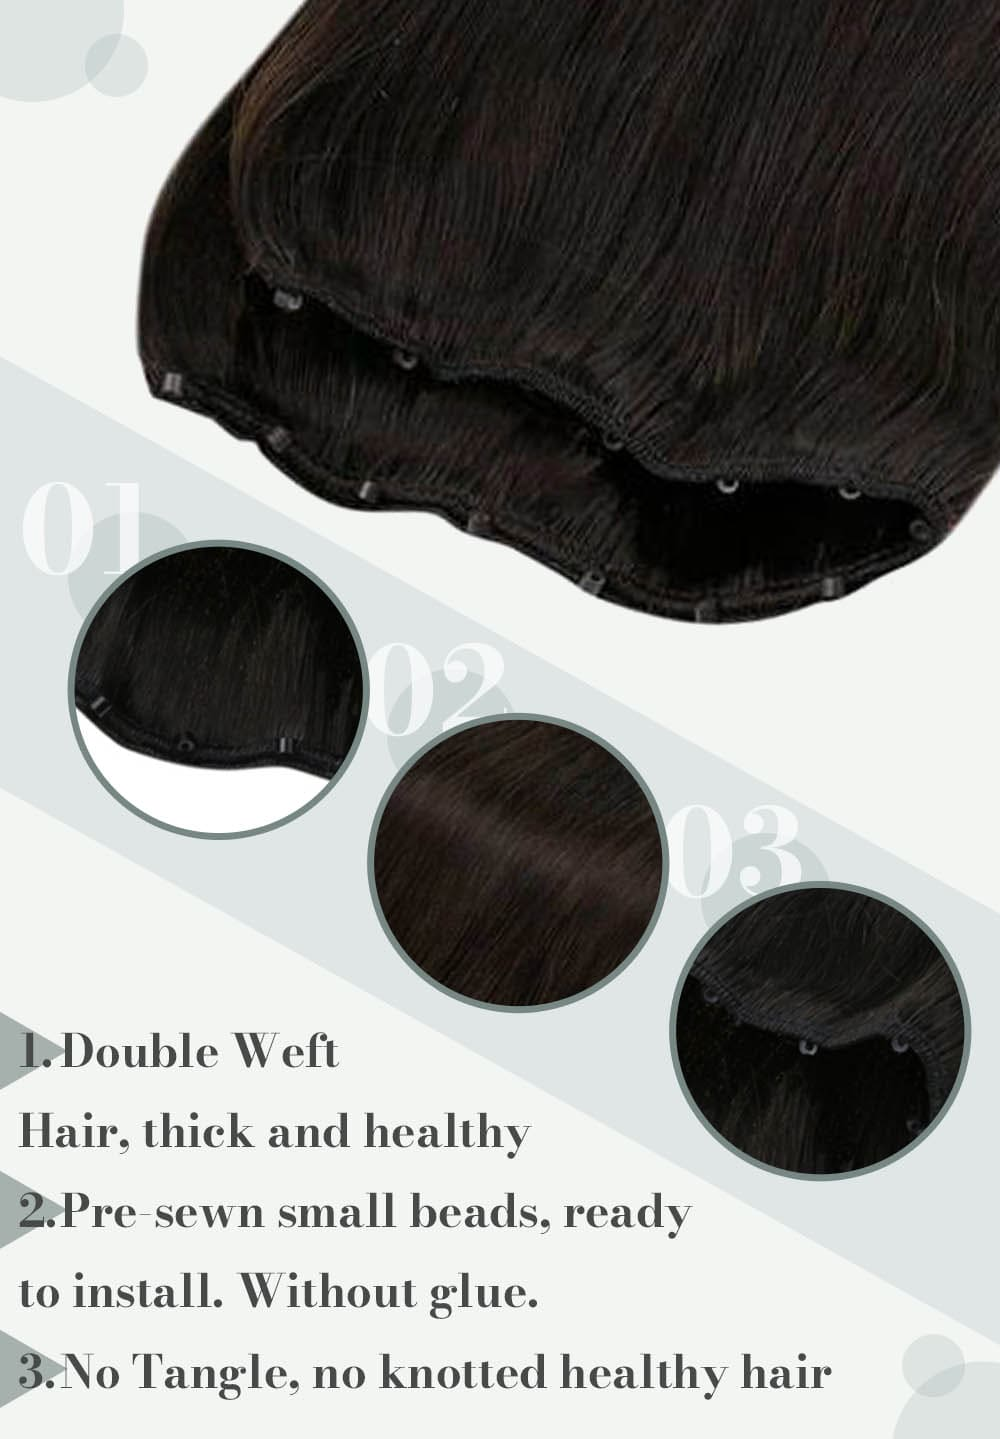 #2 laavoo real human hair extensions can be last for 3 to 6 months blend well with your hair extensions